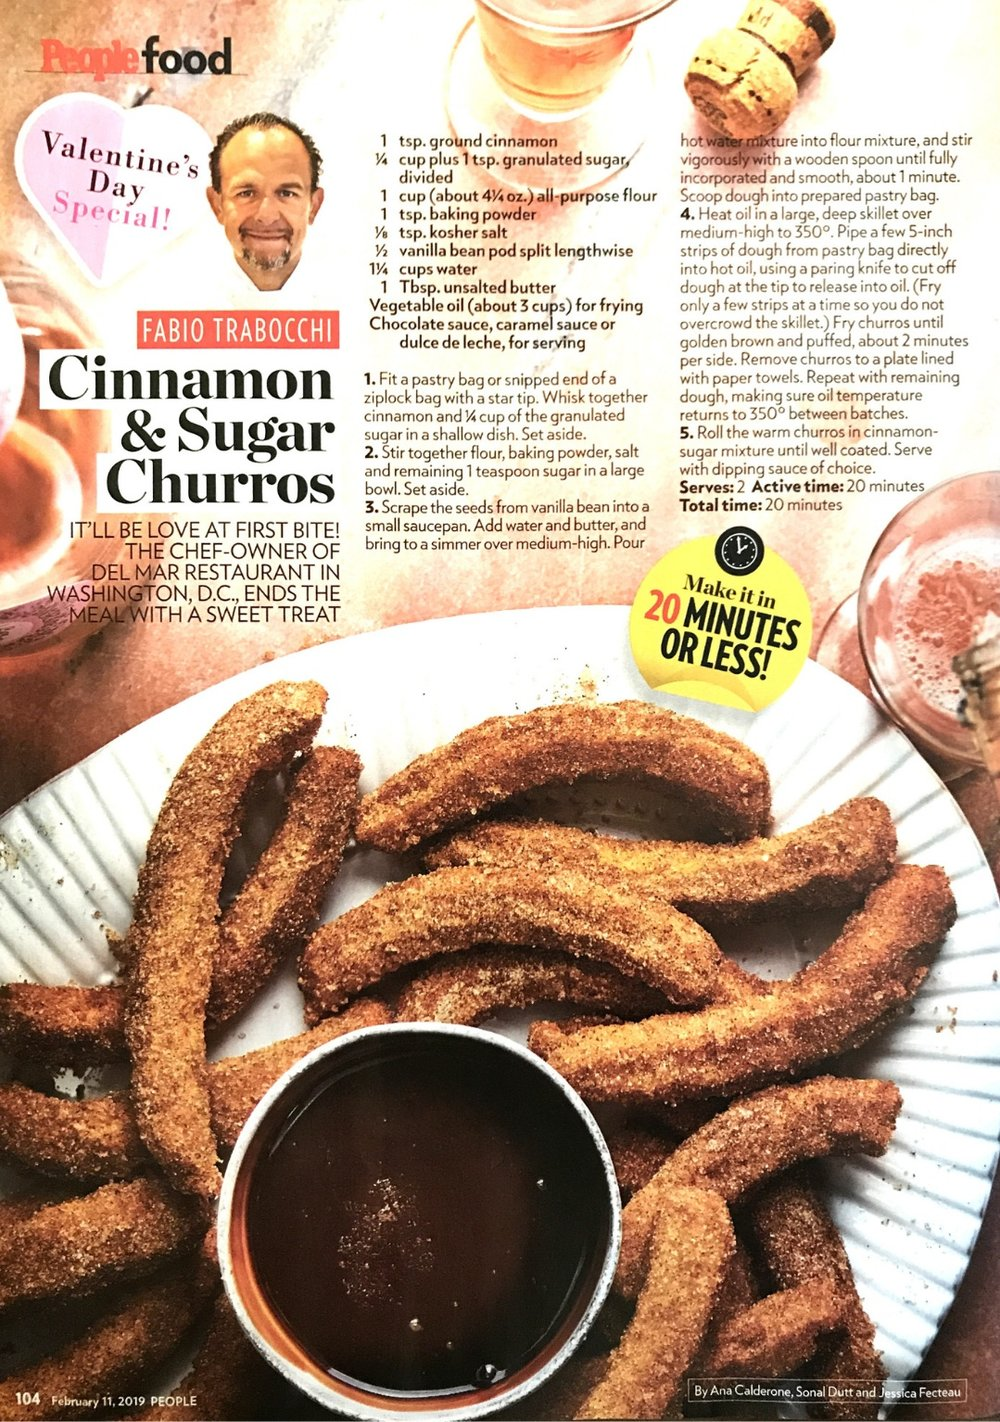 Love at First Bite! Chef Fabio's Churros for Valentine's Day - february 11, 2019 / people magazine